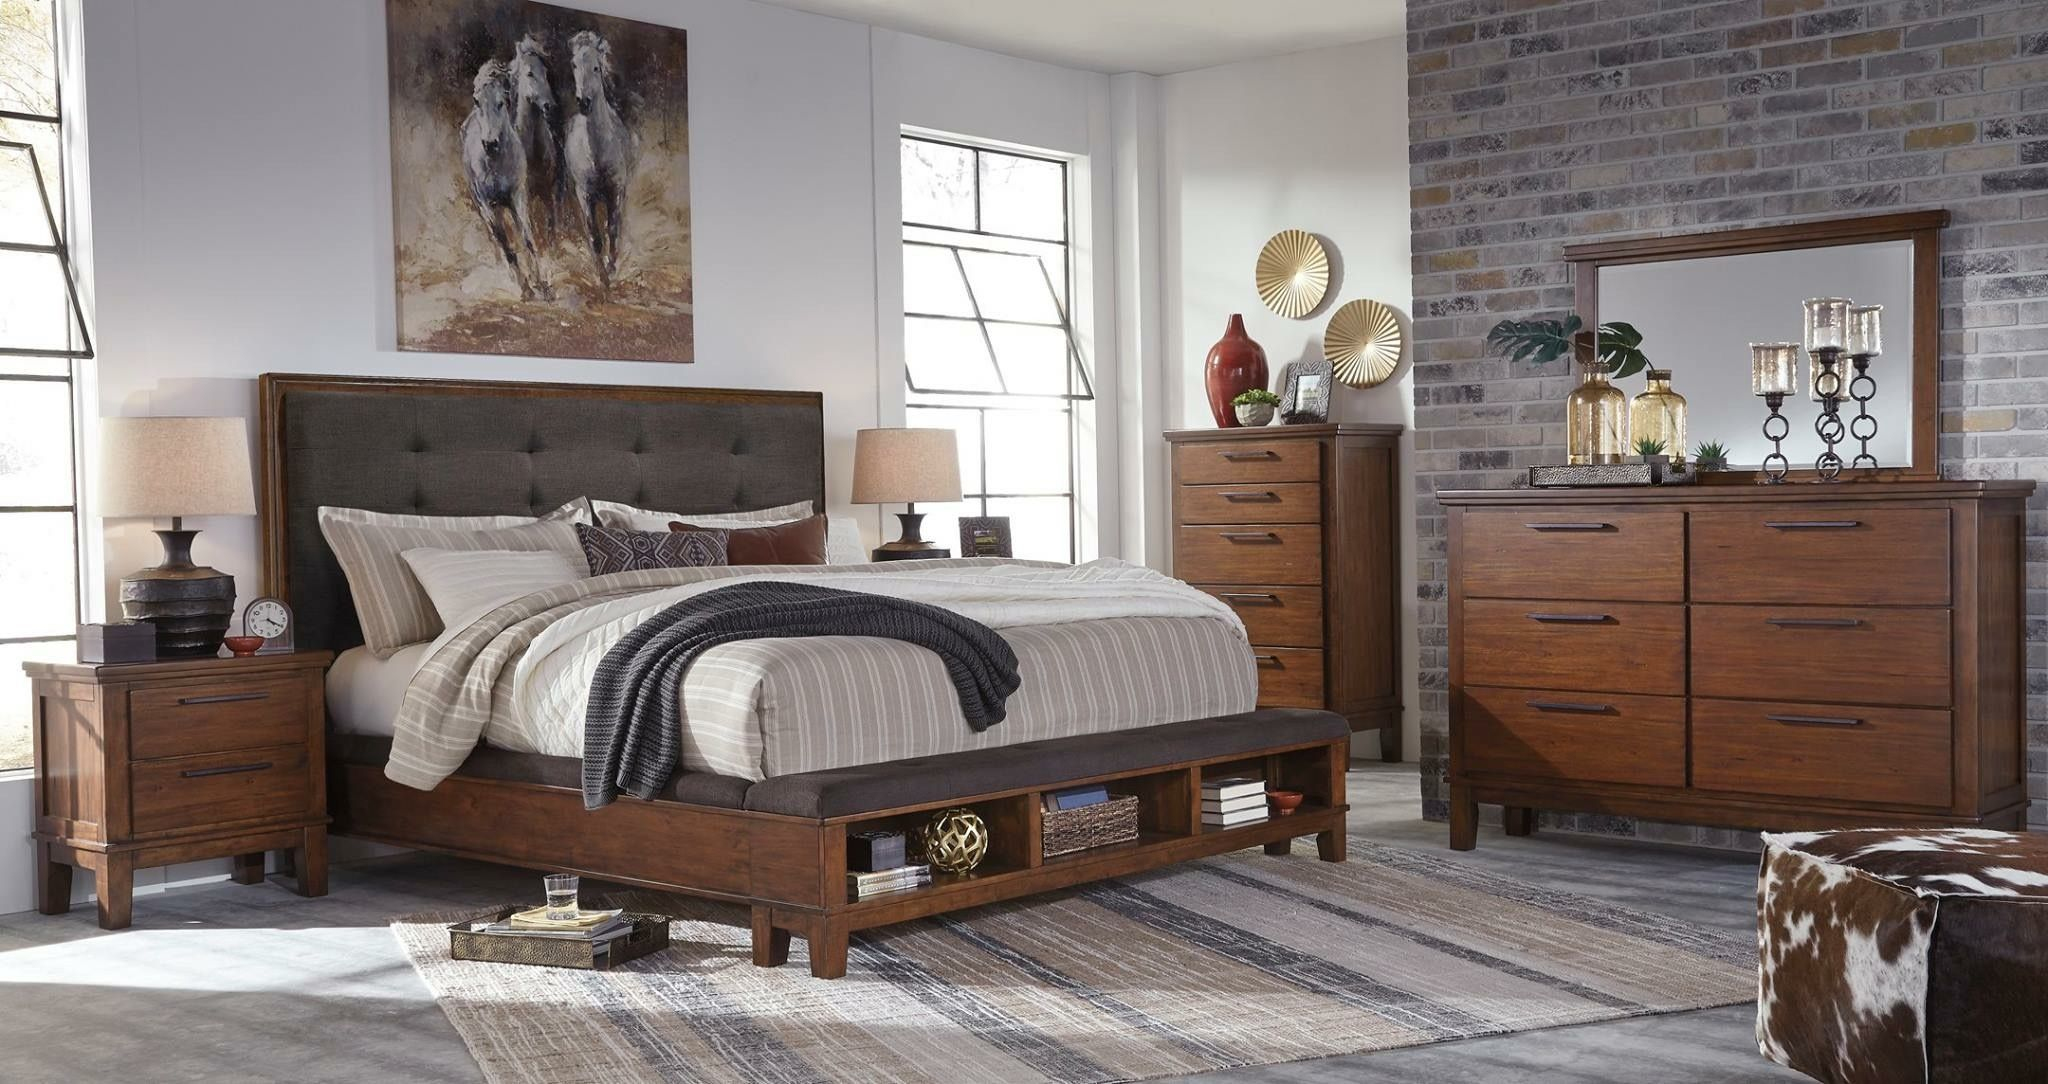 Pin by Suzanne Becker on Interior Upholstered bedroom